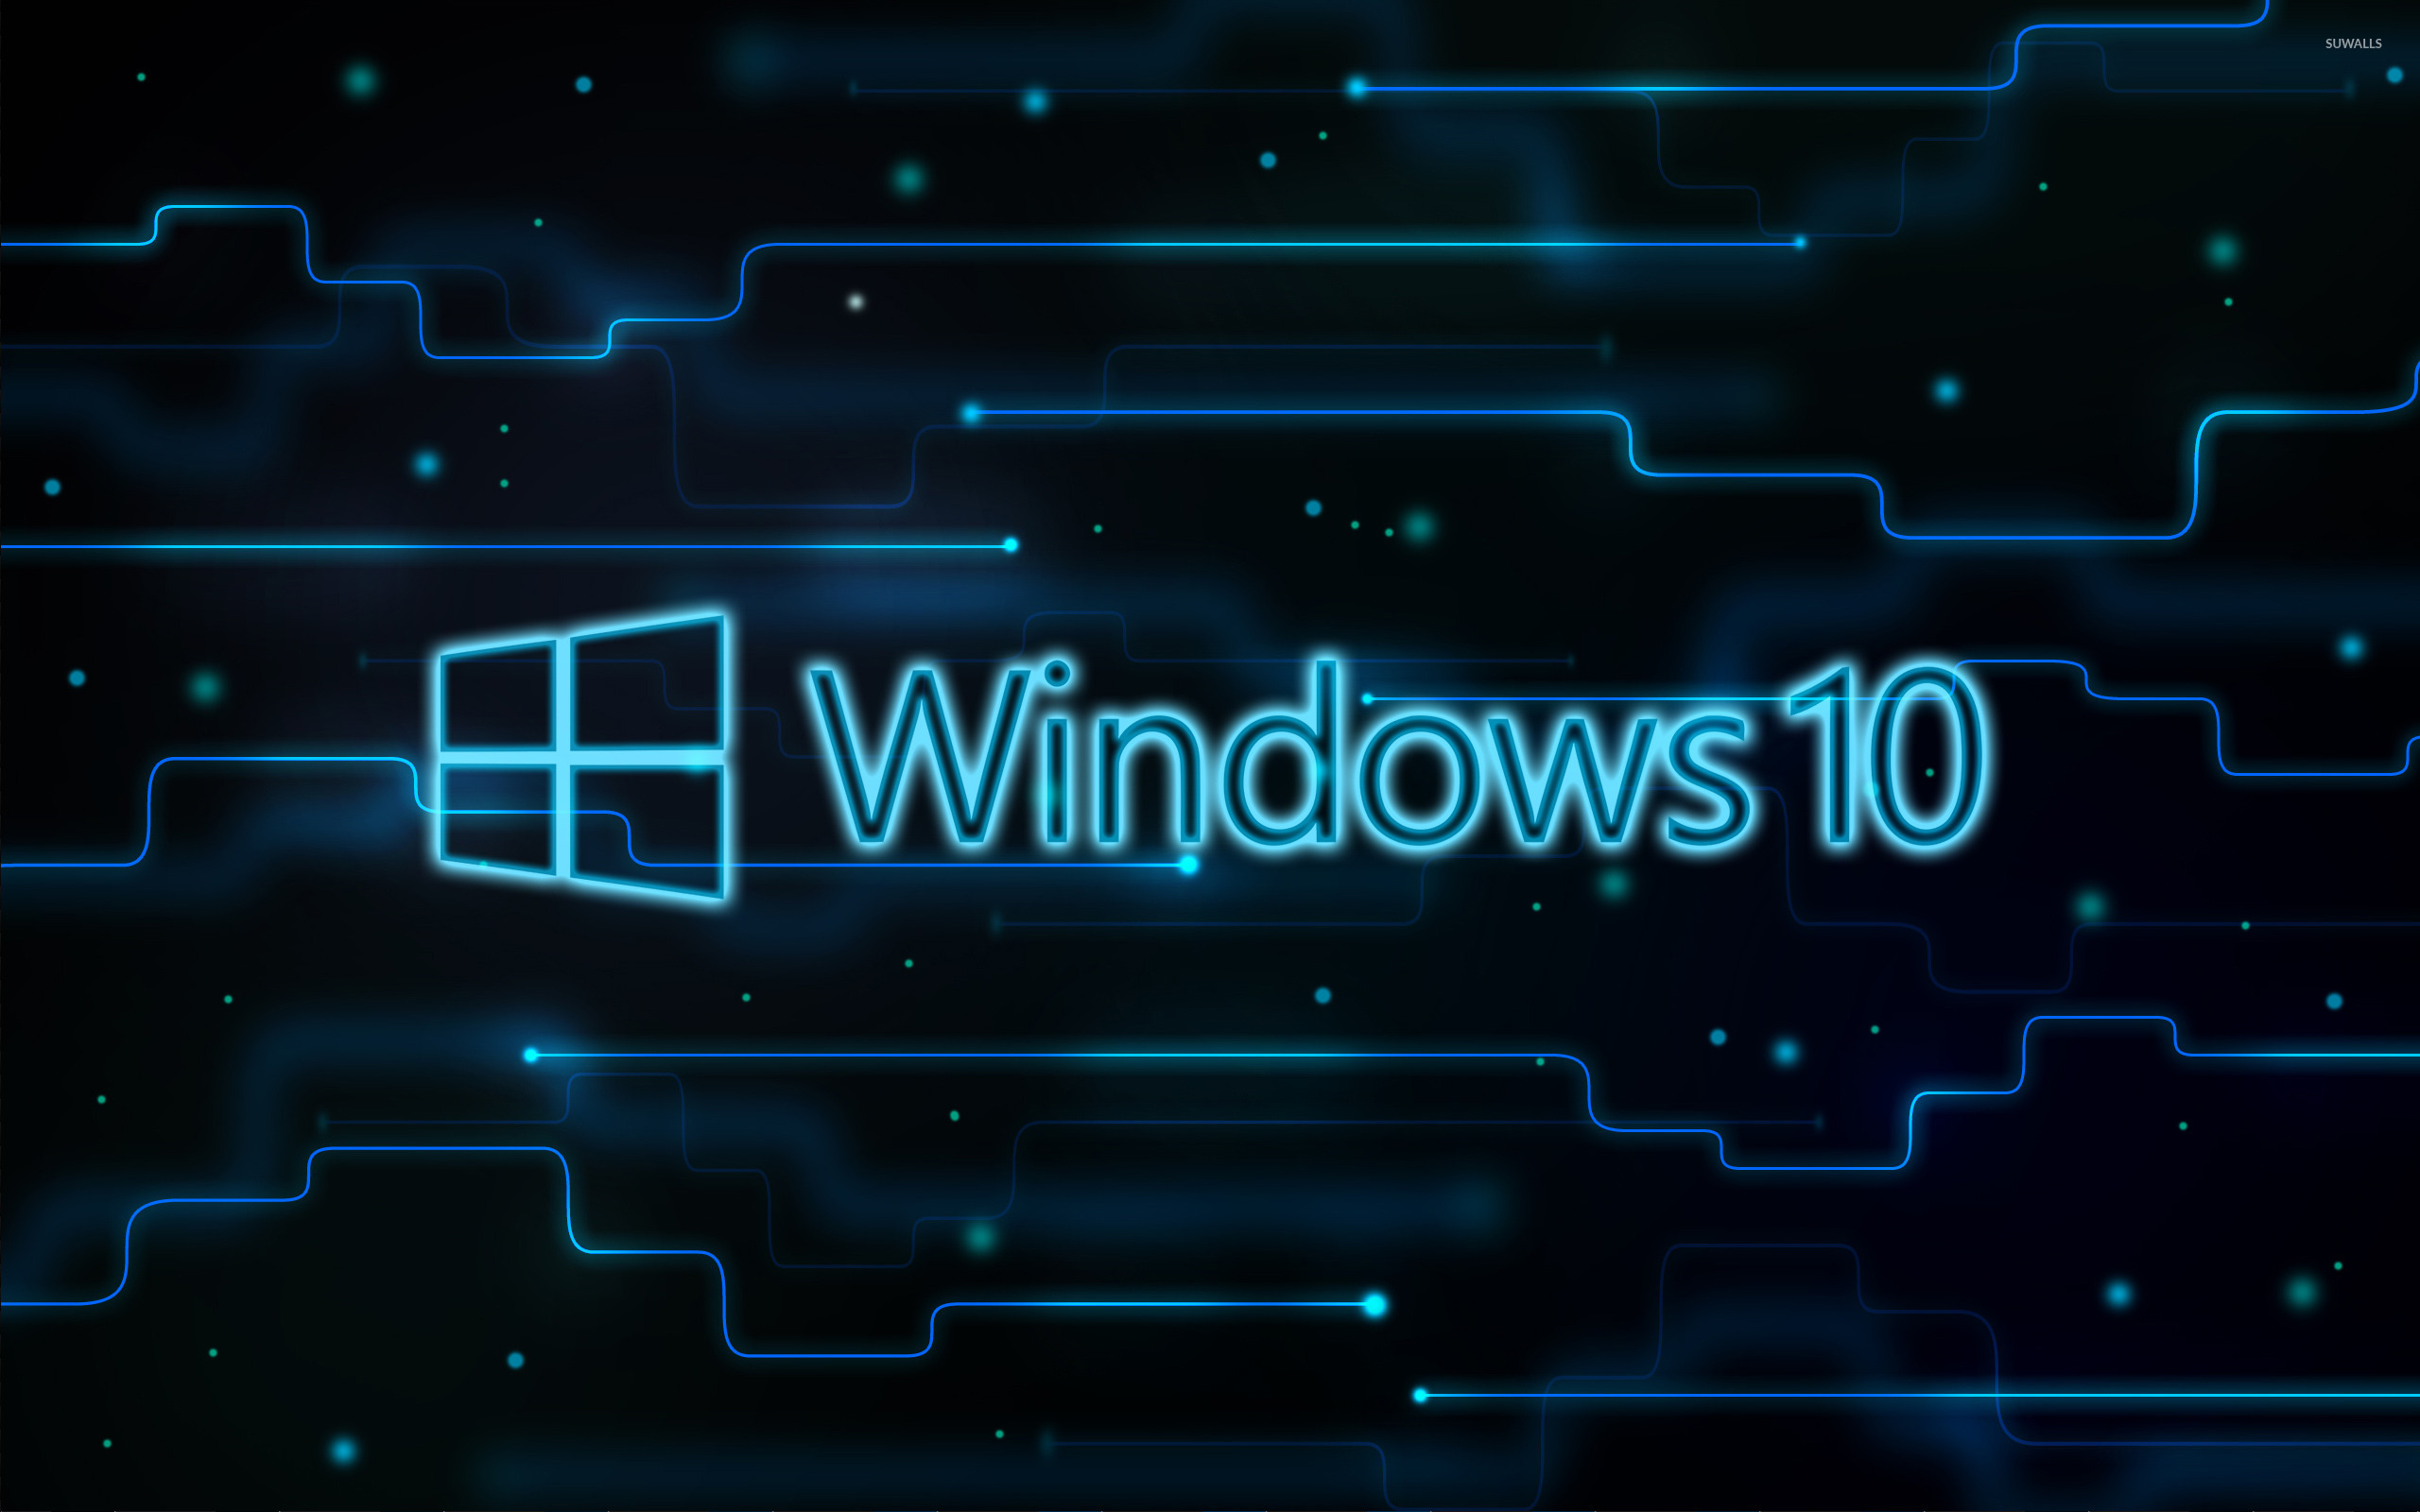 Windows 10 Wallpaper 1680x1050